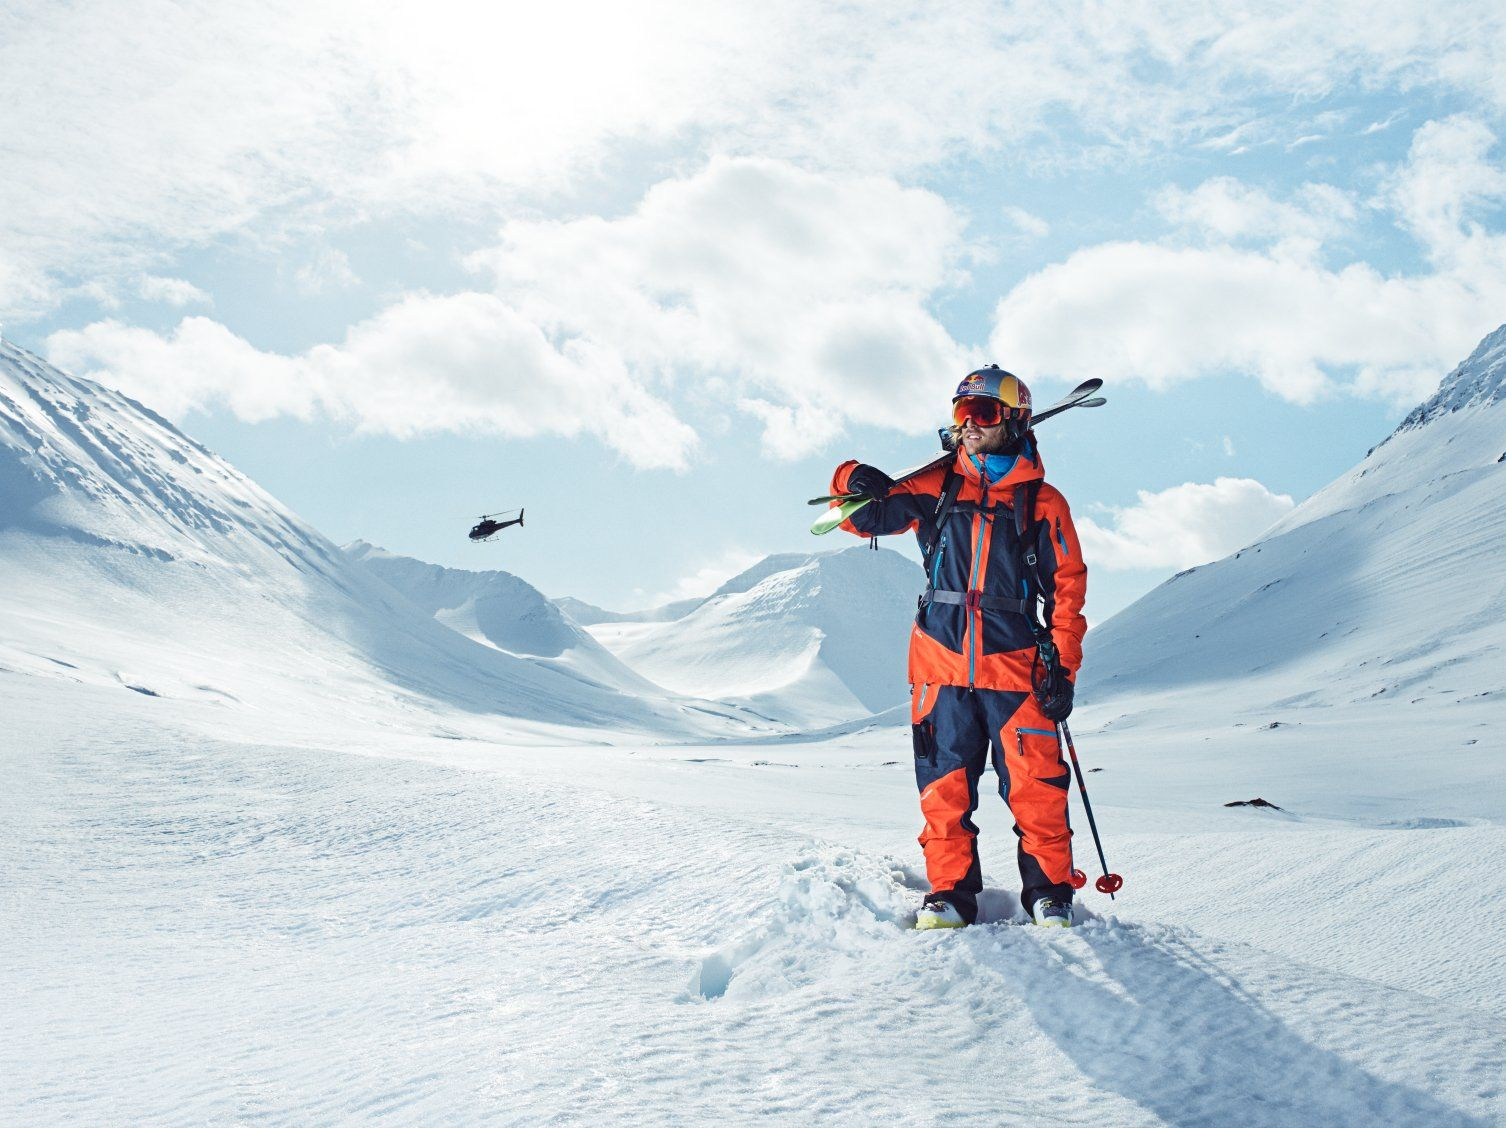 Dit Pak De Hele Herfst En Winter Kom Maar Door Of Heli Pro Jacket And Pants Freeskiing Gear Crafted From A Newly Freeride Ski Skiing Outfit Skier Girl